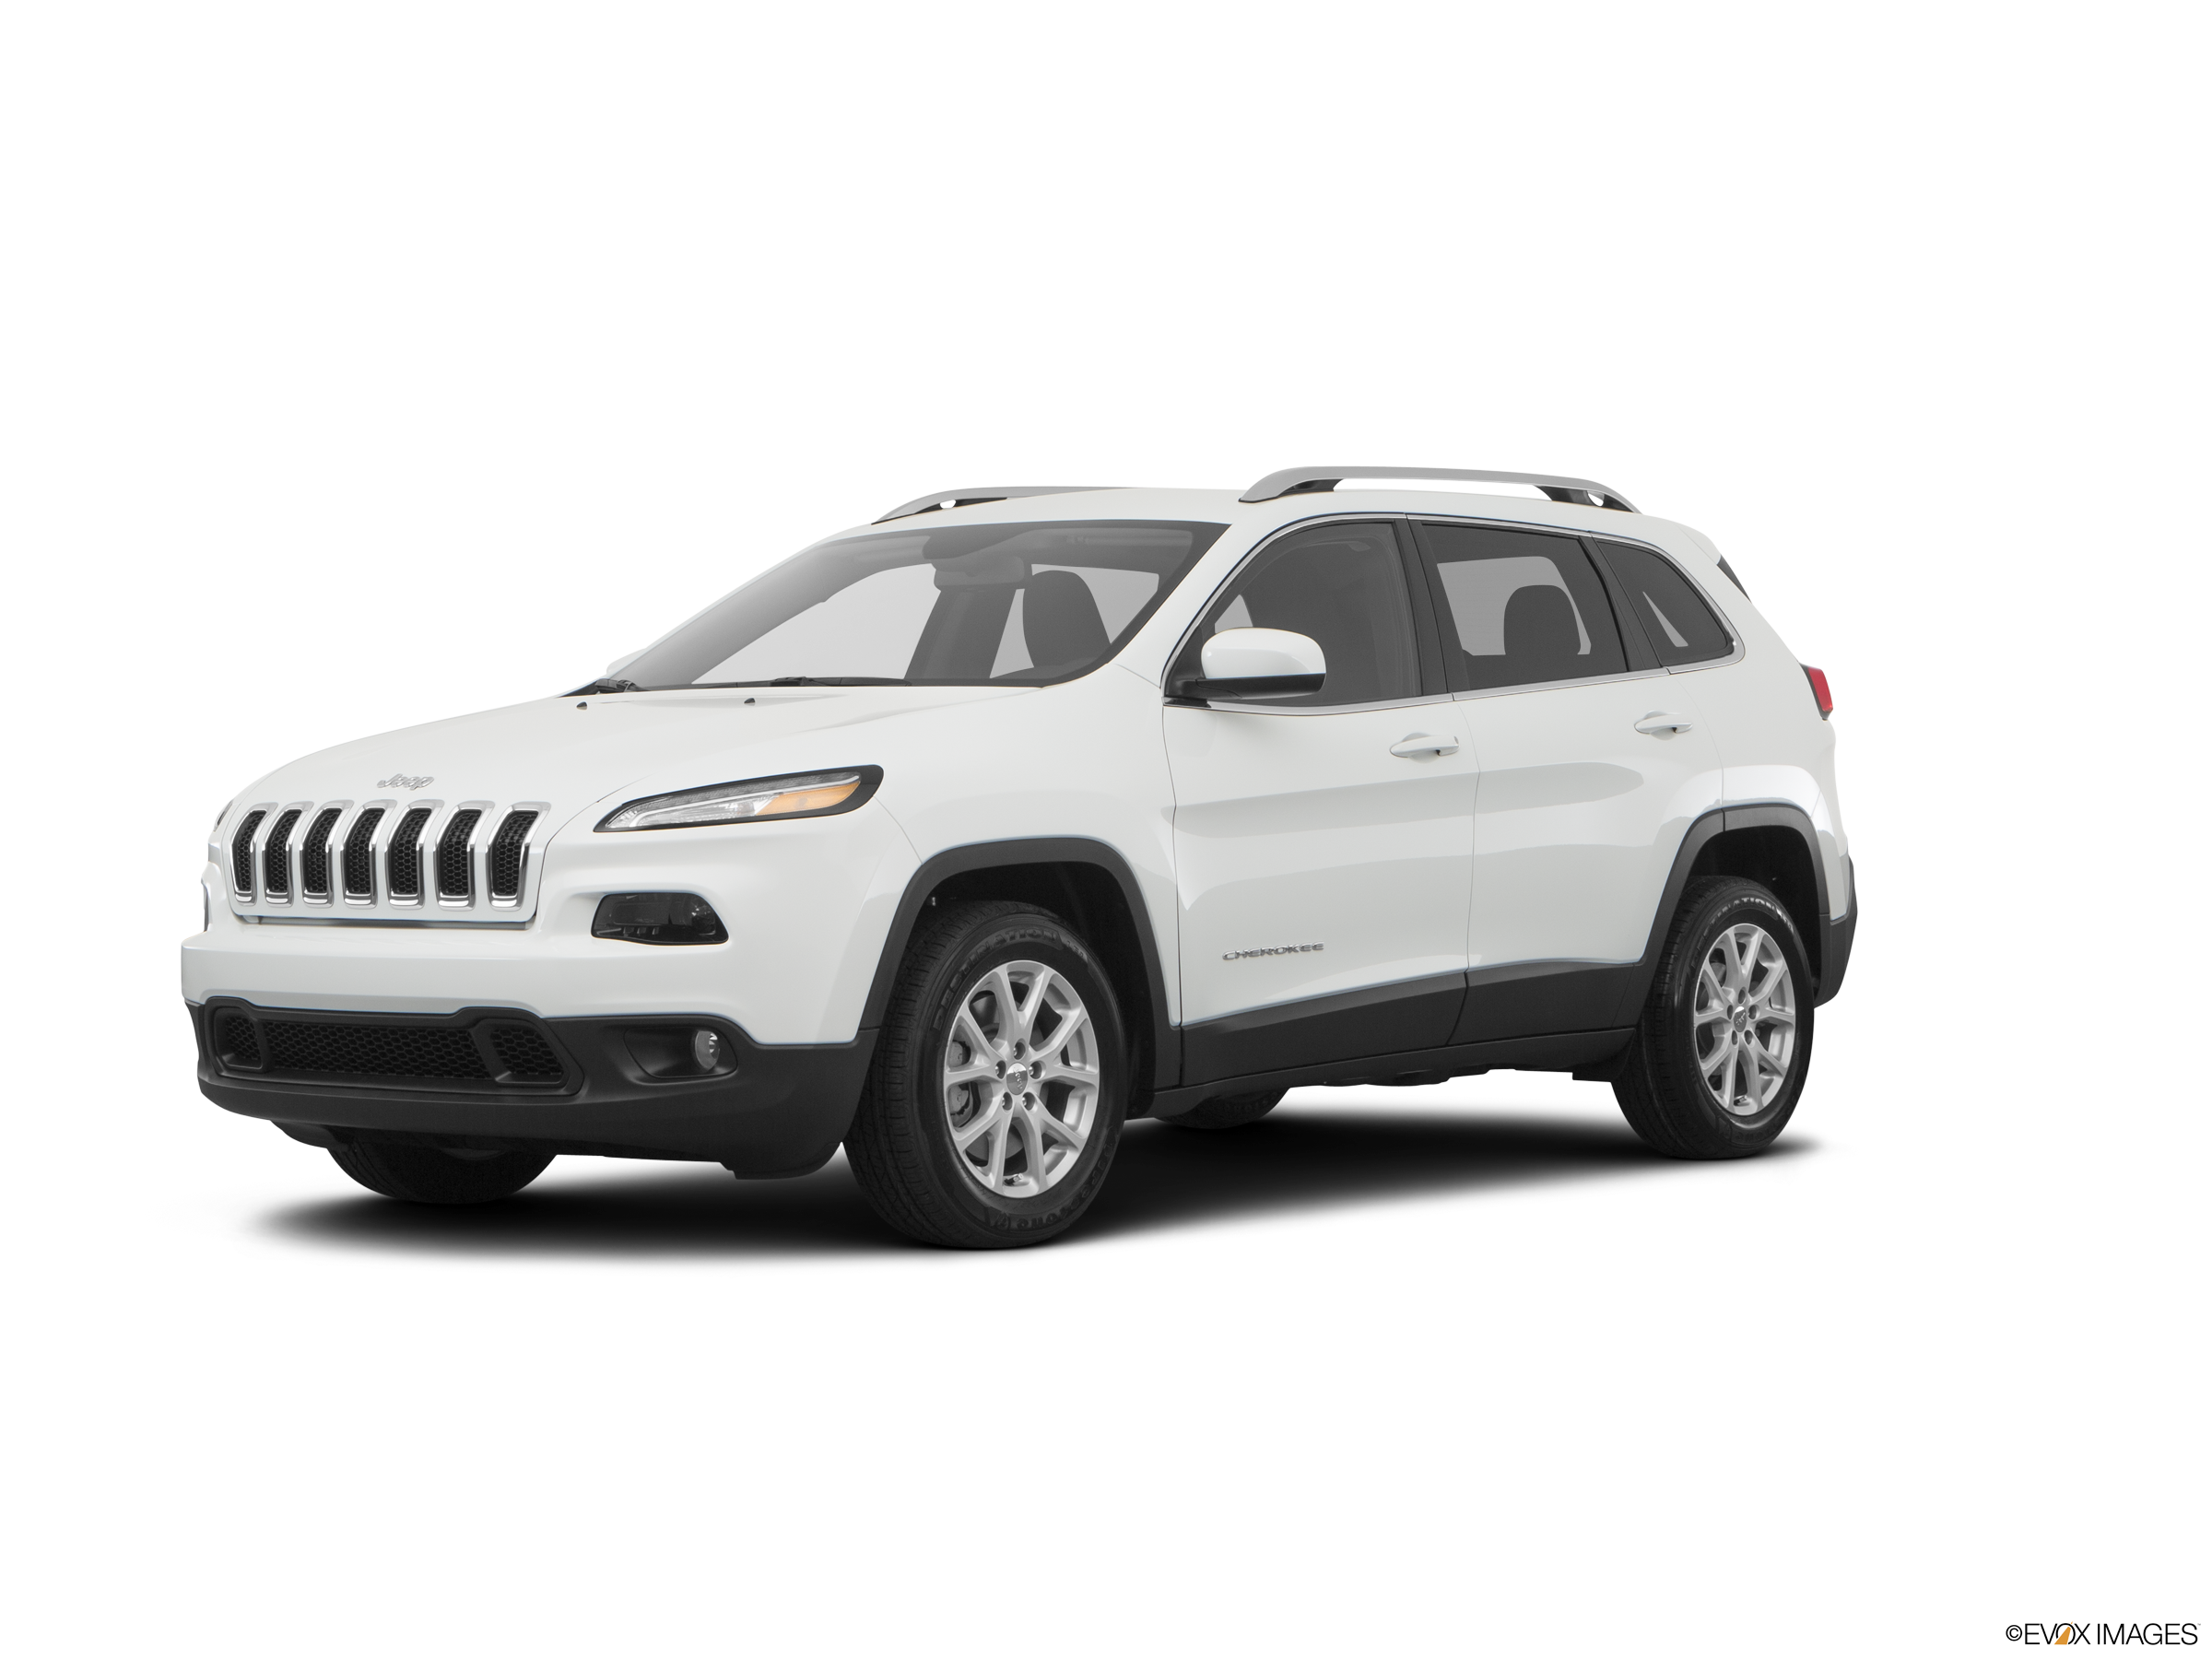 2018 Jeep Cherokee Values Cars For Sale Kelley Blue Book